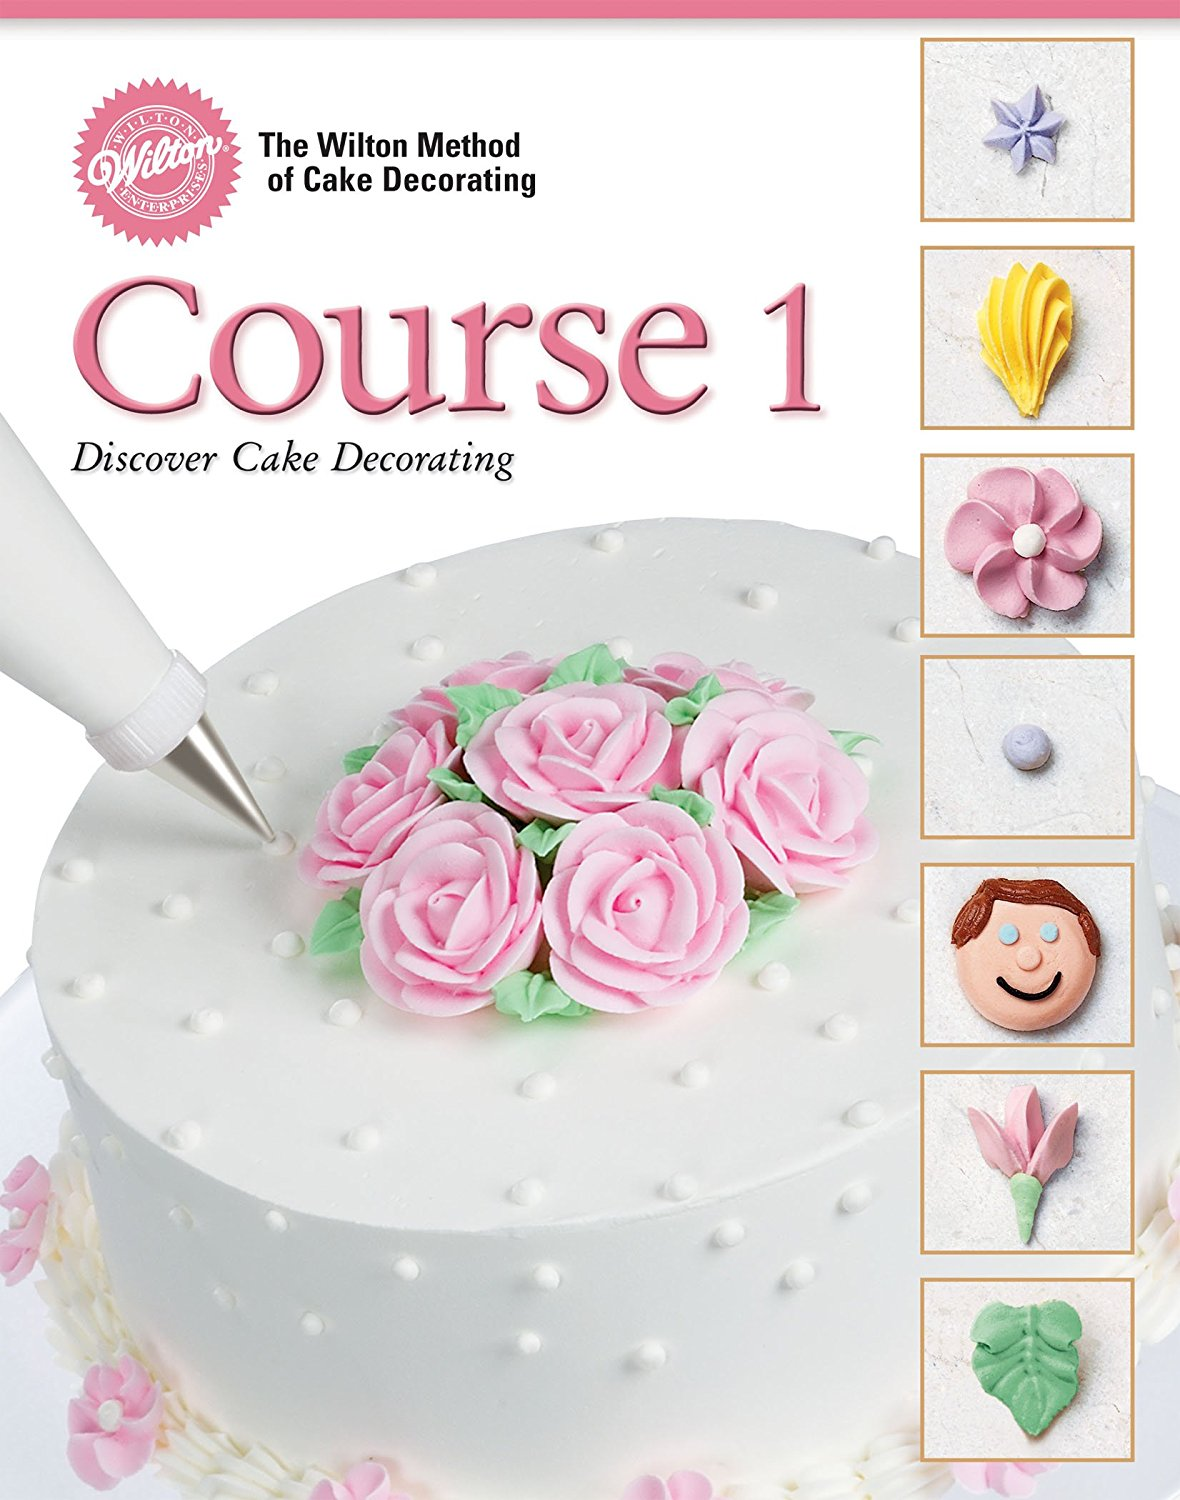 Course 1 Student Guide-Discover Cake Decorating